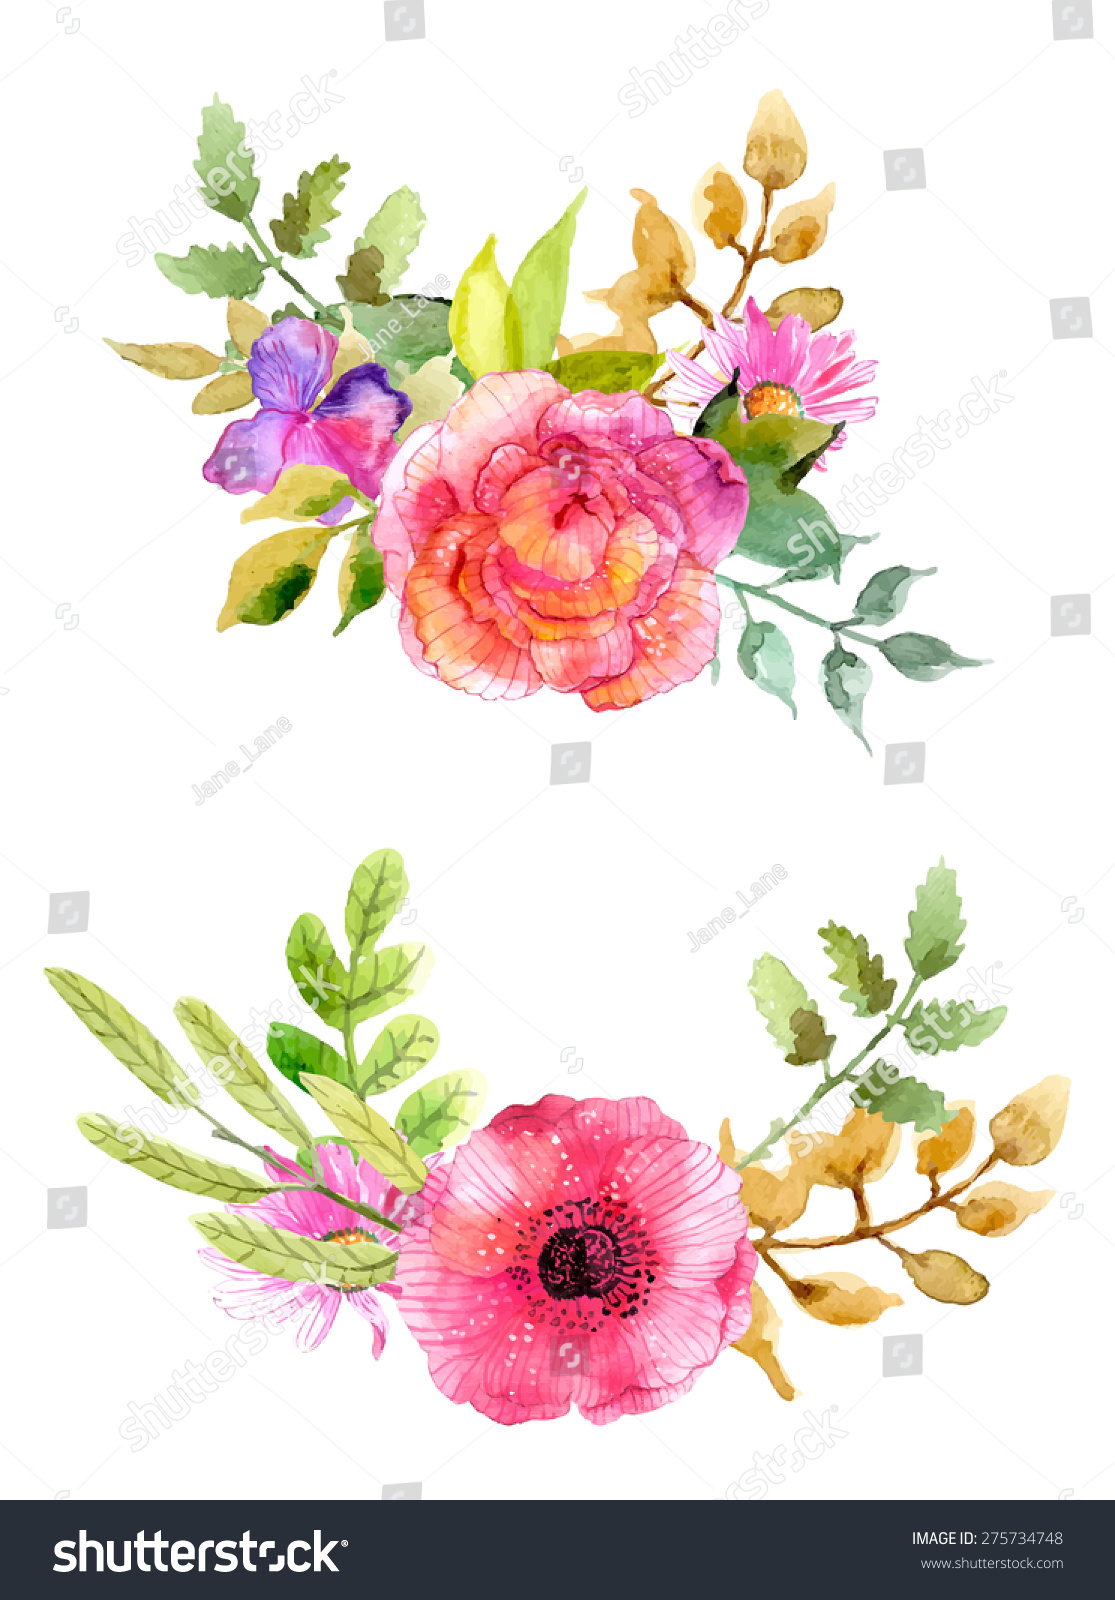 Watercolor flowers set colorful floral collection stock for Spring flowers watercolor